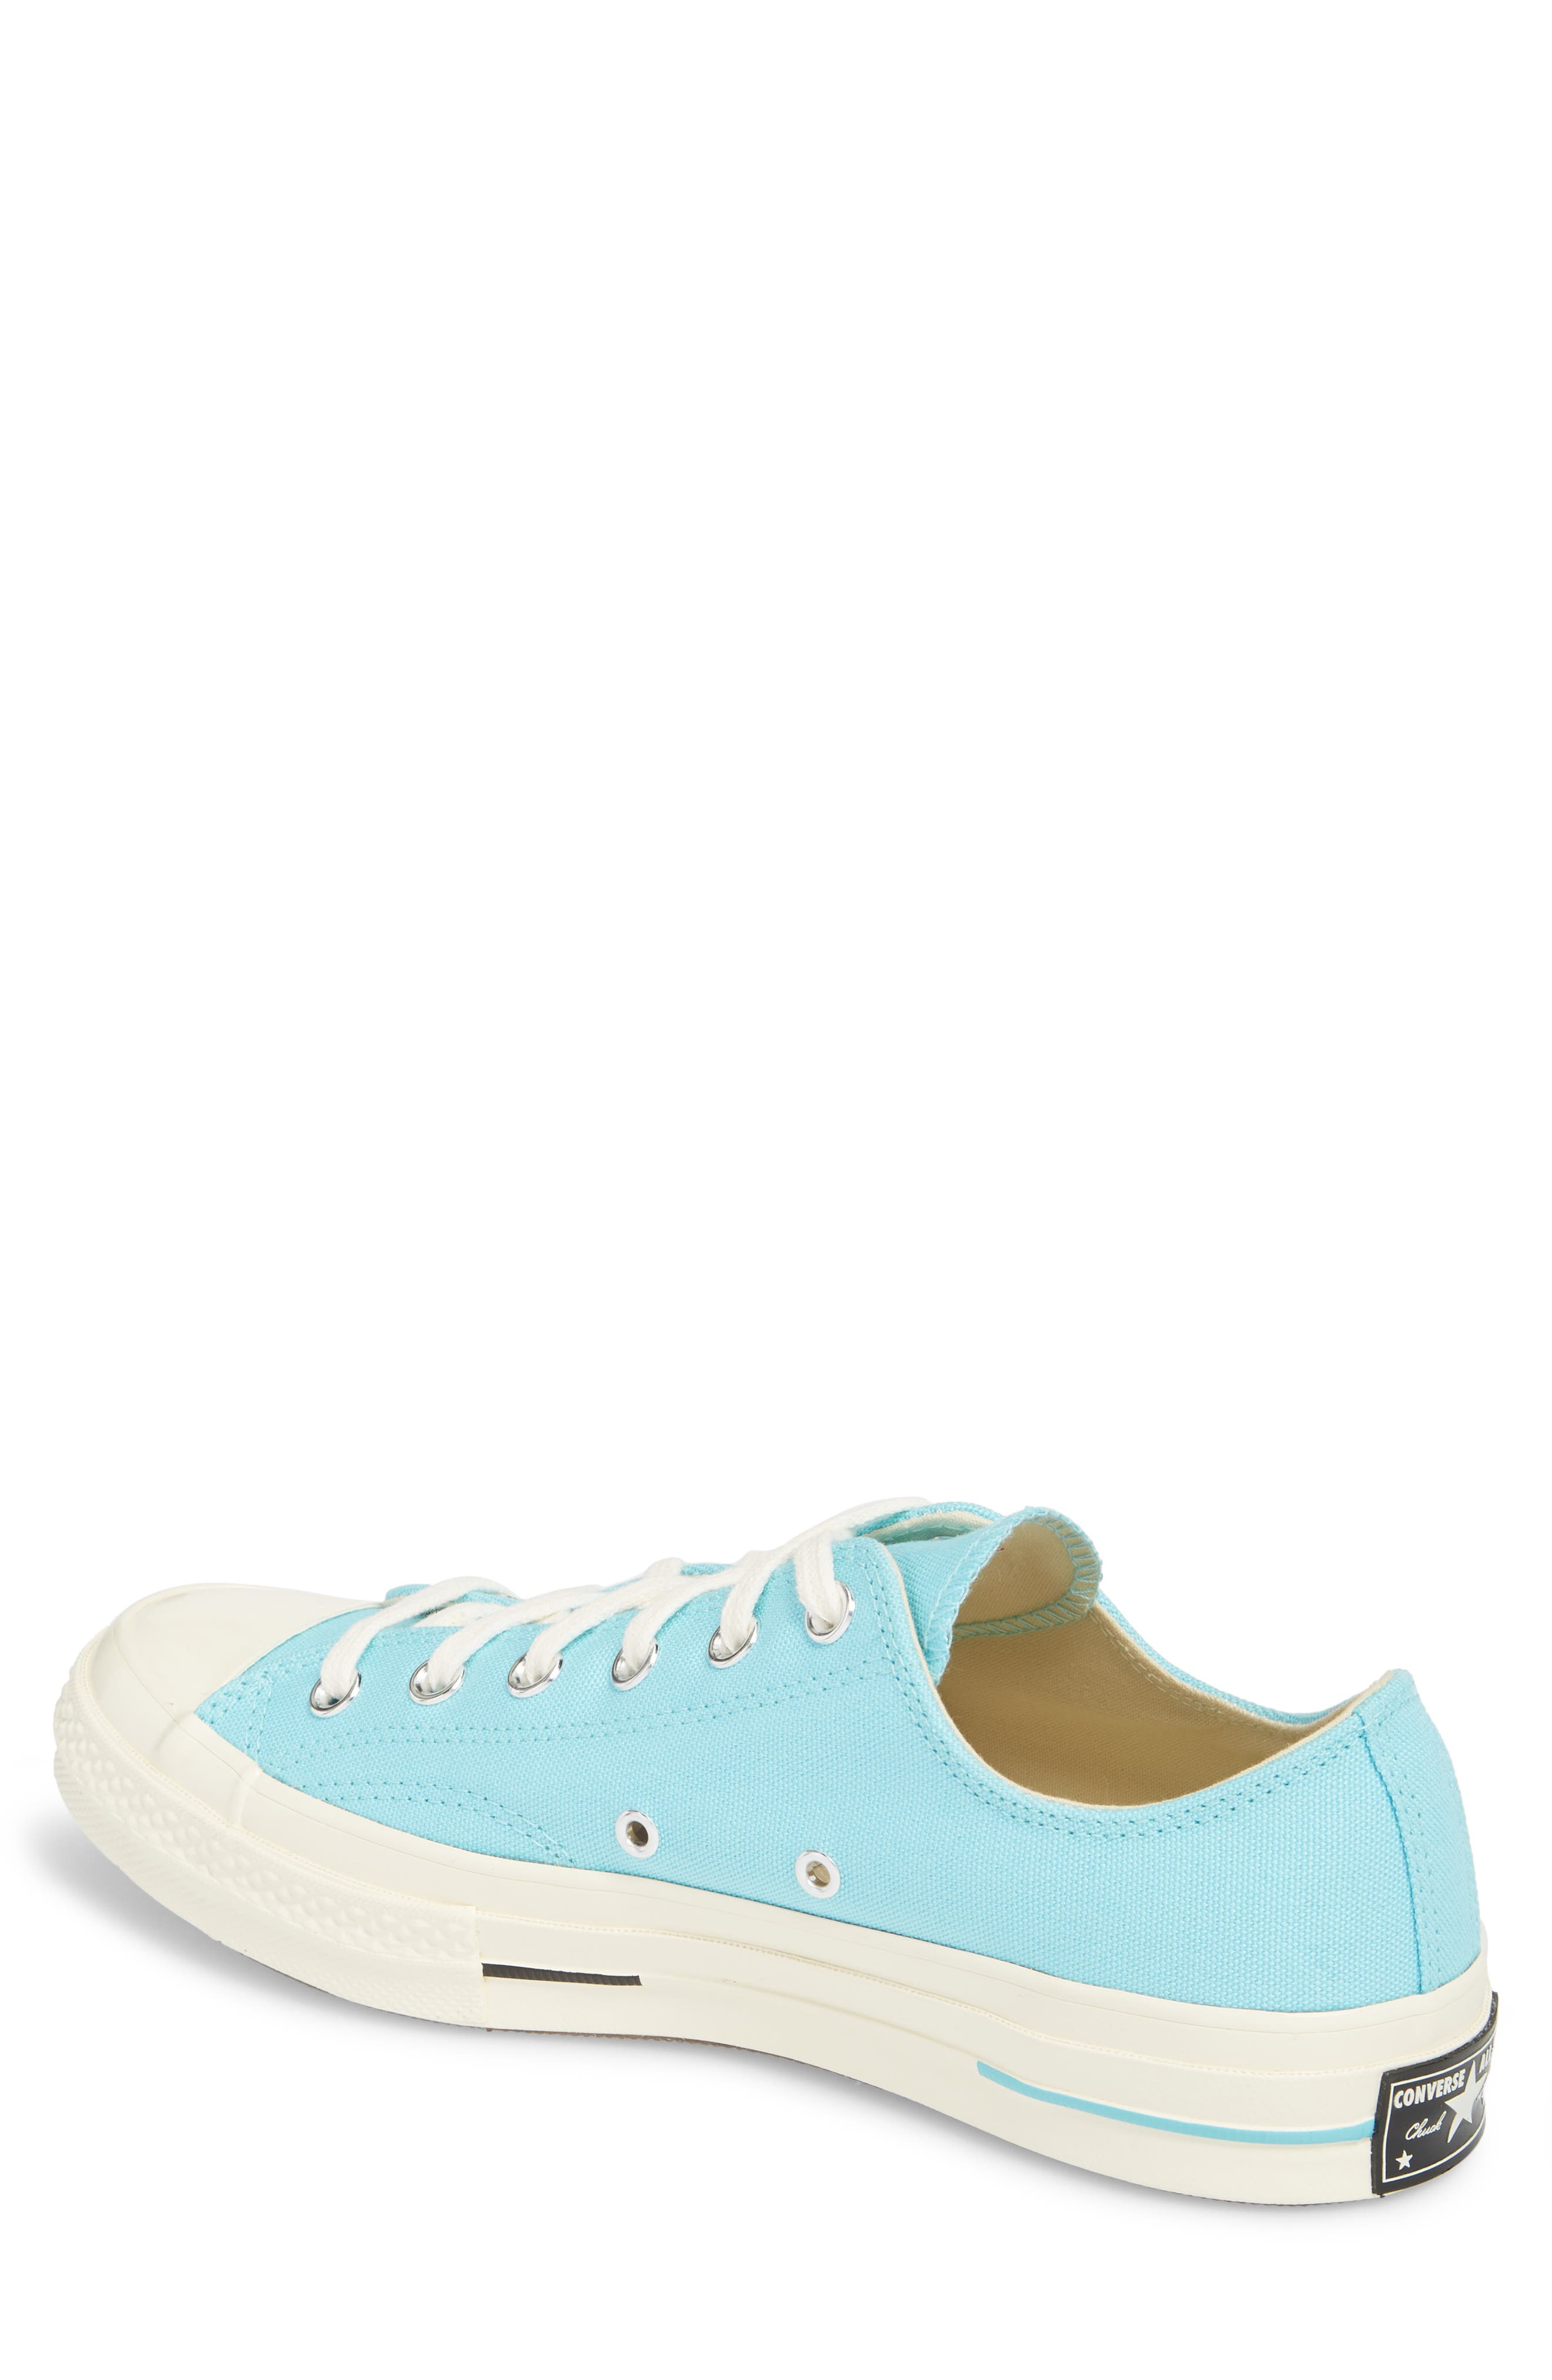 Chuck Taylor<sup>®</sup> All Star<sup>®</sup> 70 Brights Low Top Sneaker,                             Alternate thumbnail 2, color,                             486